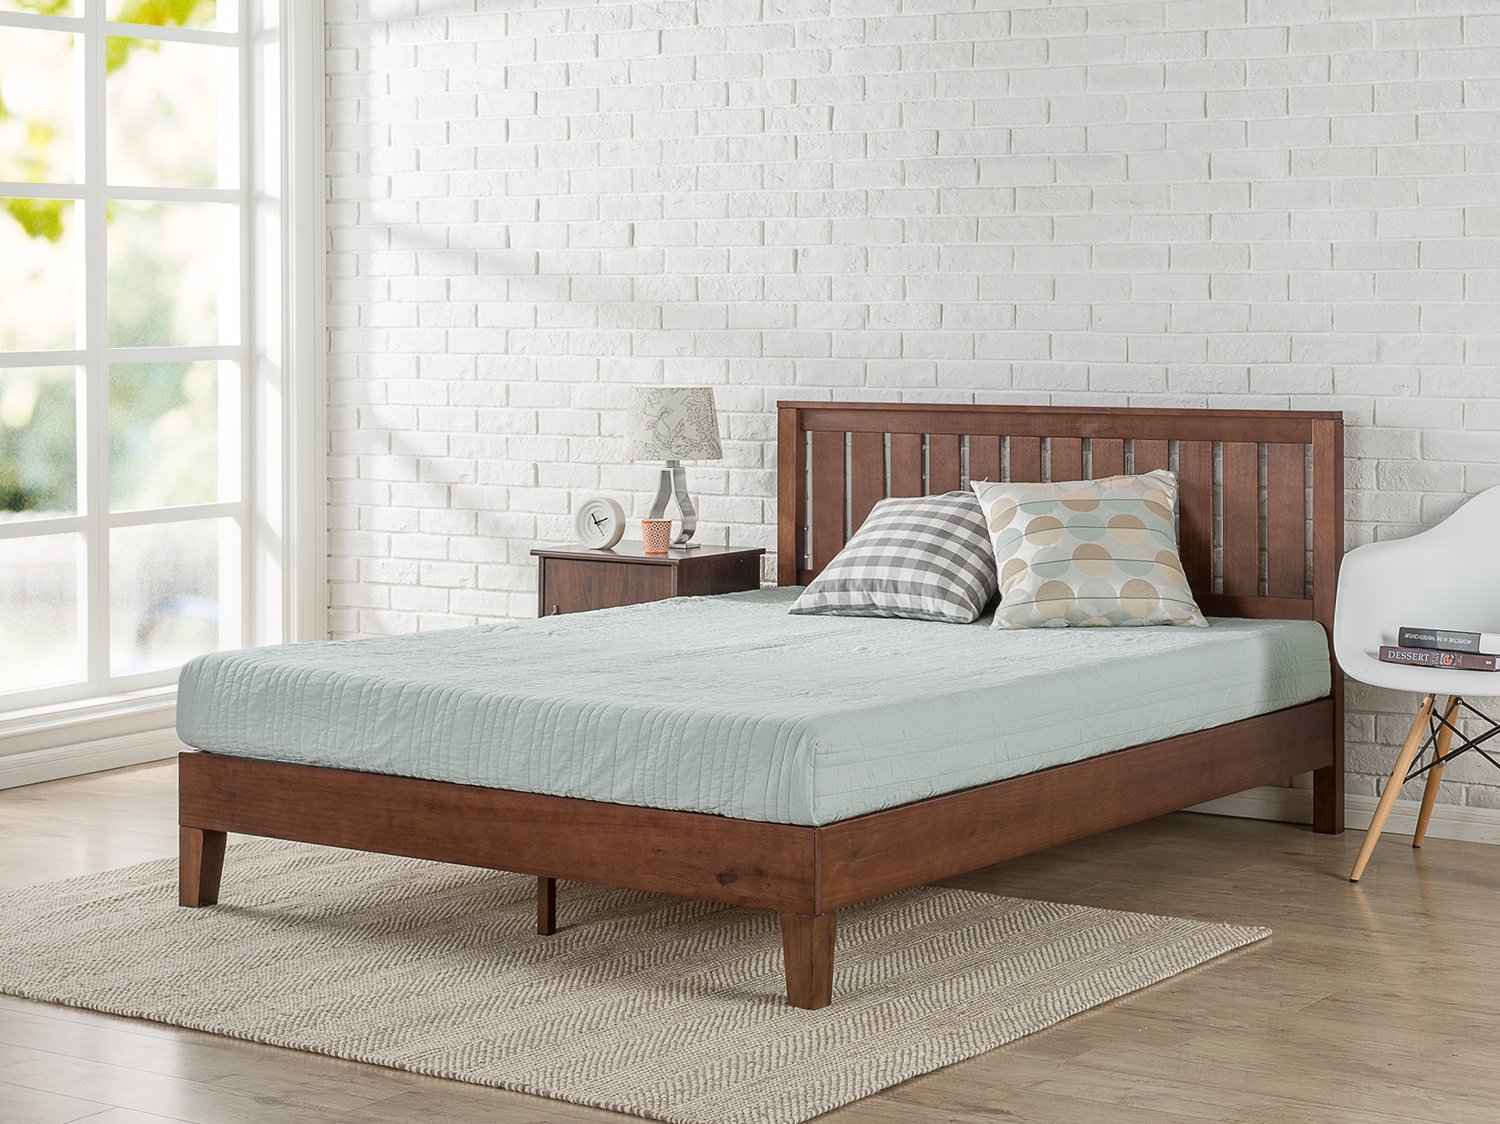 Zinus 12 Inch Deluxe Wood Platform Bed with Headboard / No Box Spring Needed / Wood Slat Support / Antique Espresso Finish, Full by Zinus (Image #1)